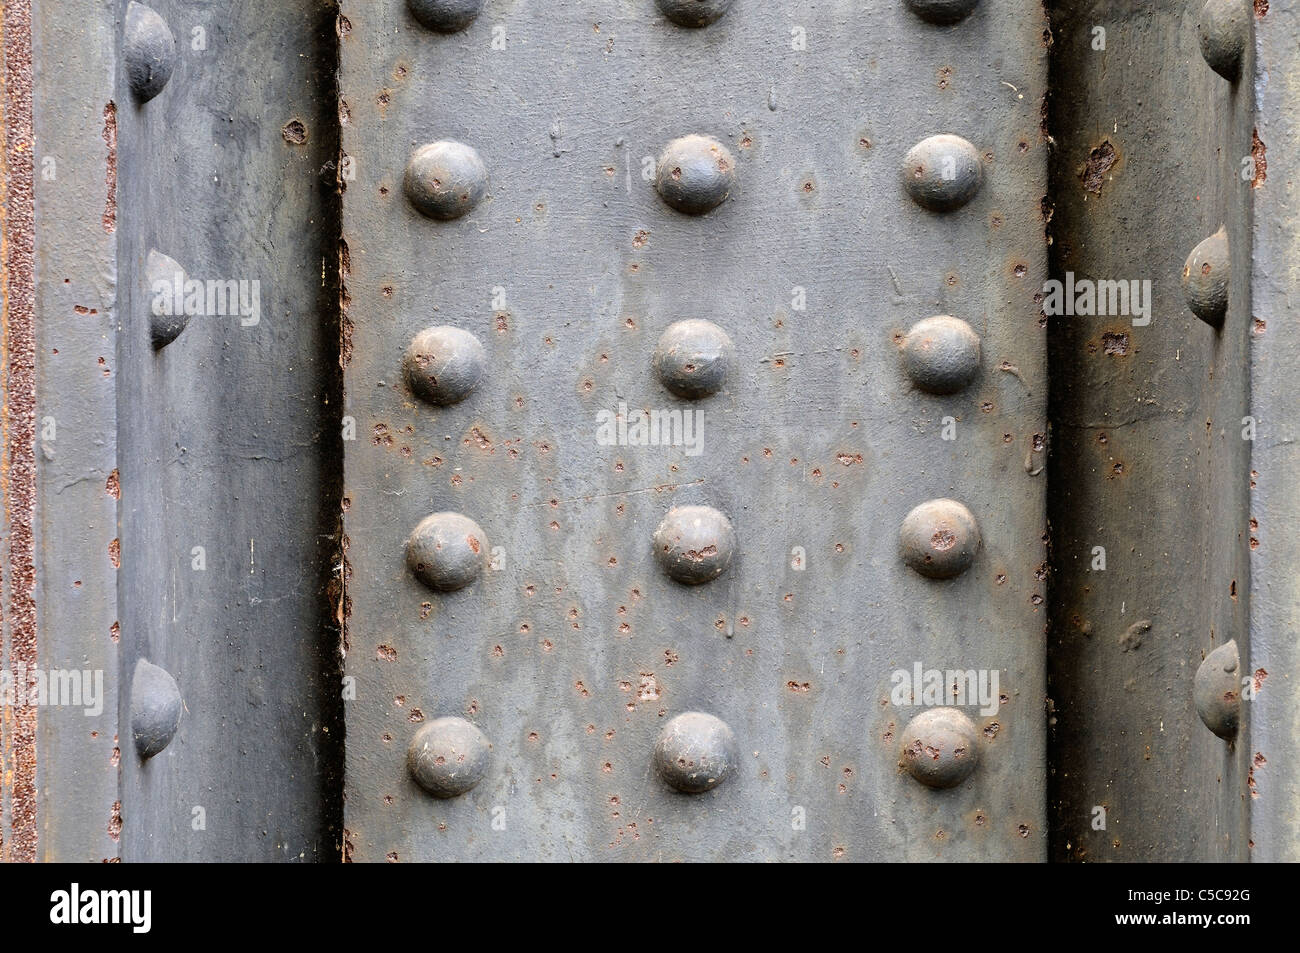 Grungy metal plate background with rivets. - Stock Image